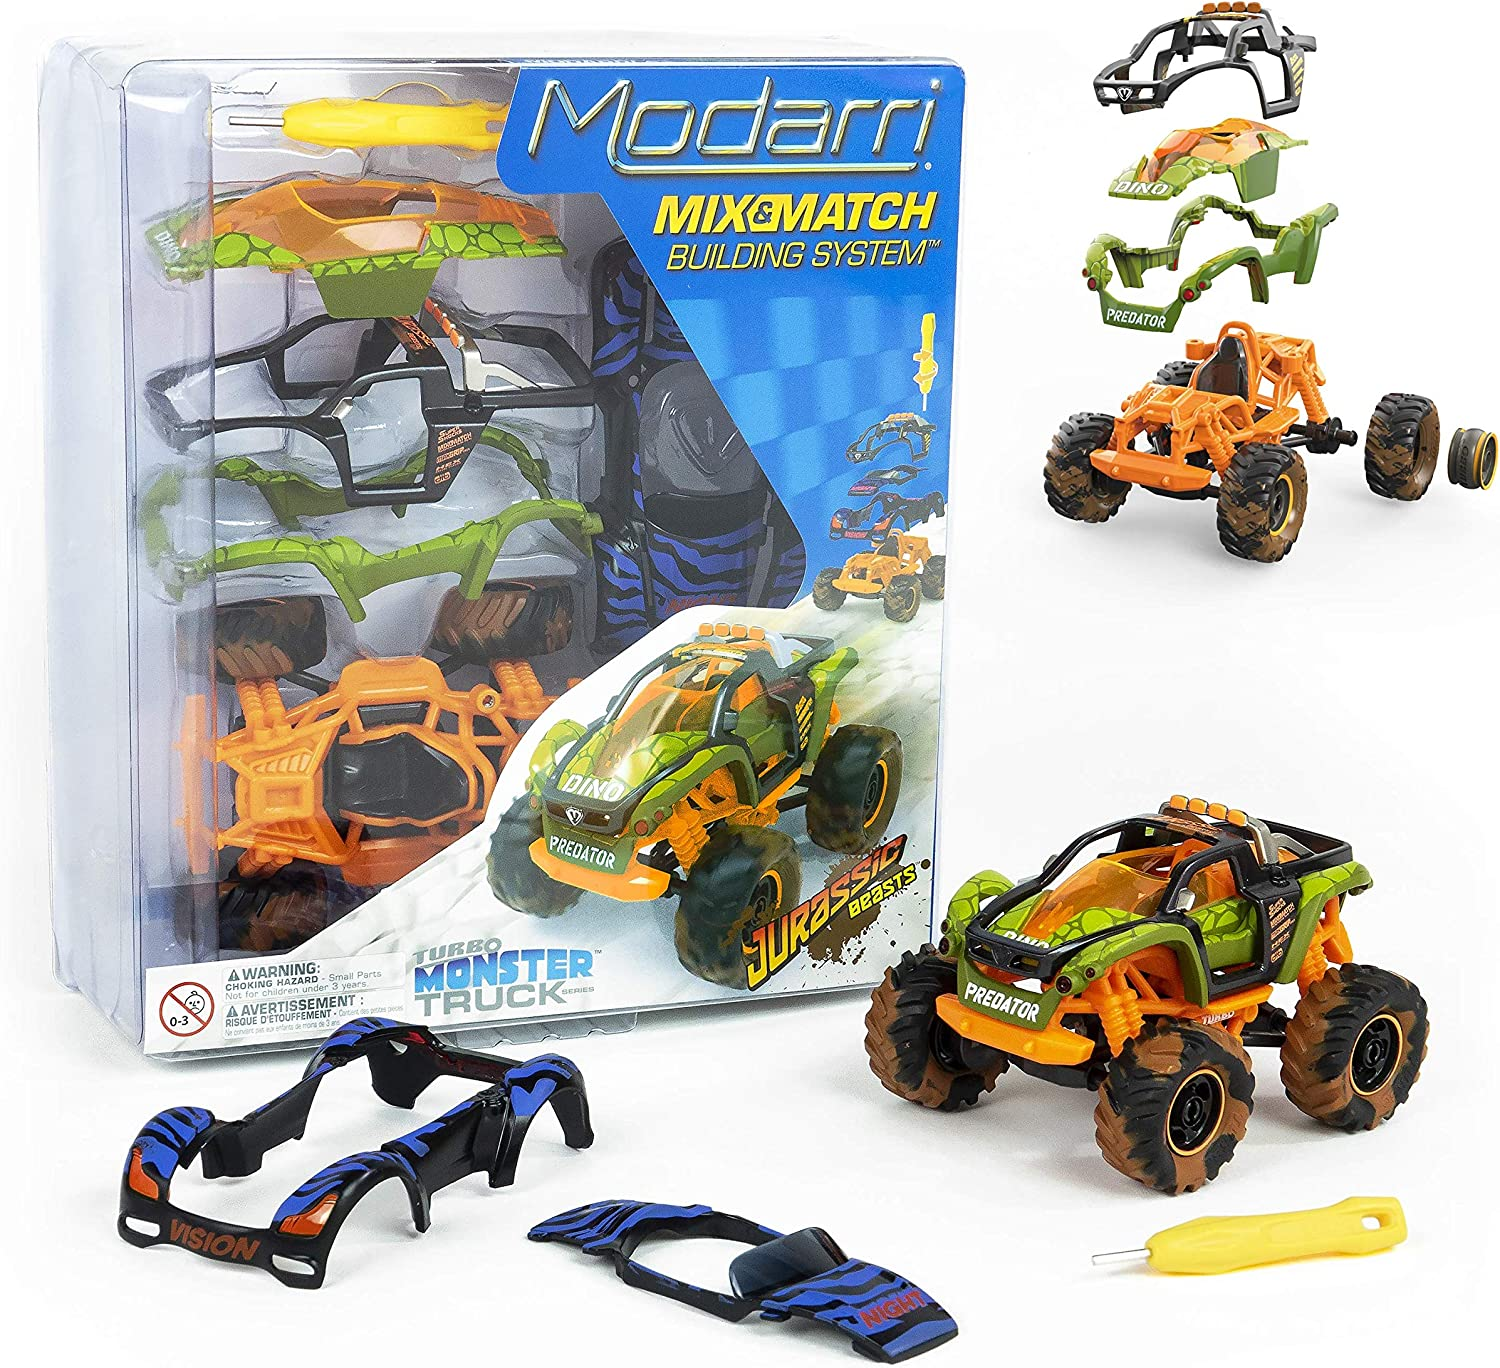 Modarri M1 Jurassic Beasts Monster Truck | Build Your Car Kit Toy Set - Ultimate Toy Car: Make Your Own Car Toy - for Thousands of Designs - Educational Take Apart Toy Vehicle